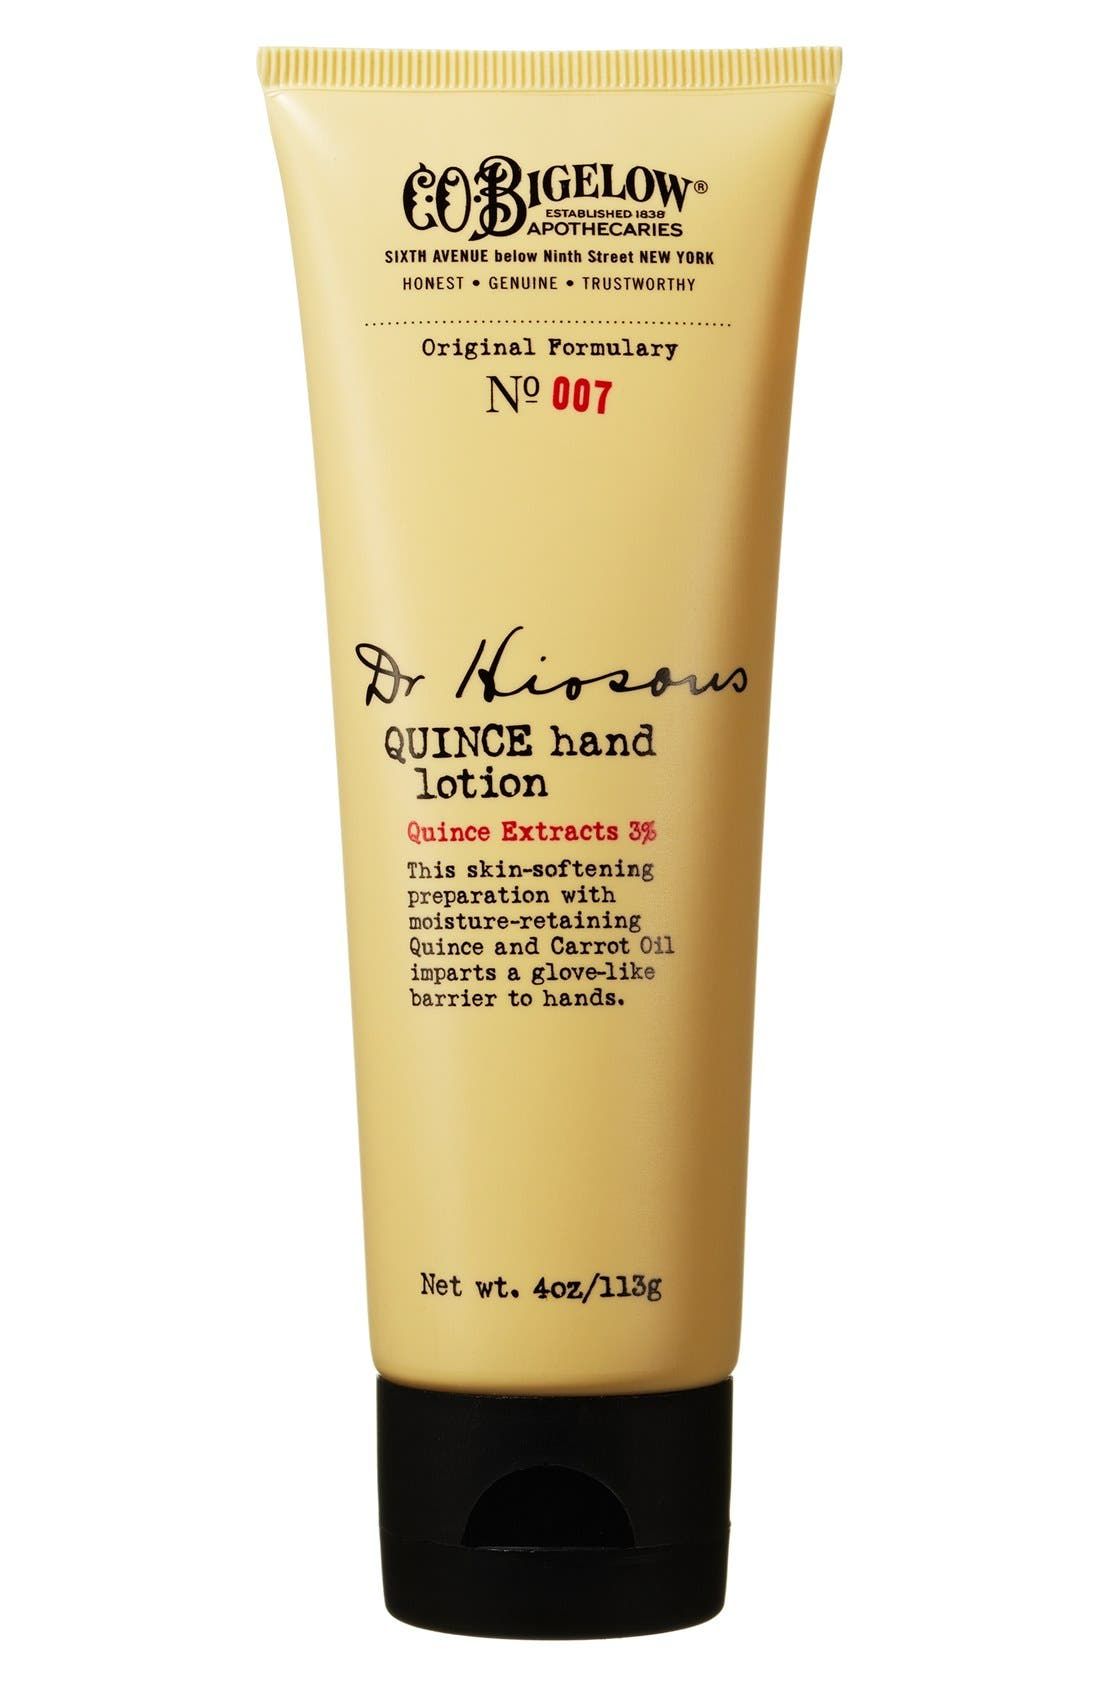 C.O. Bigelow® 'Dr. Hiosous' Quince Hand Lotion